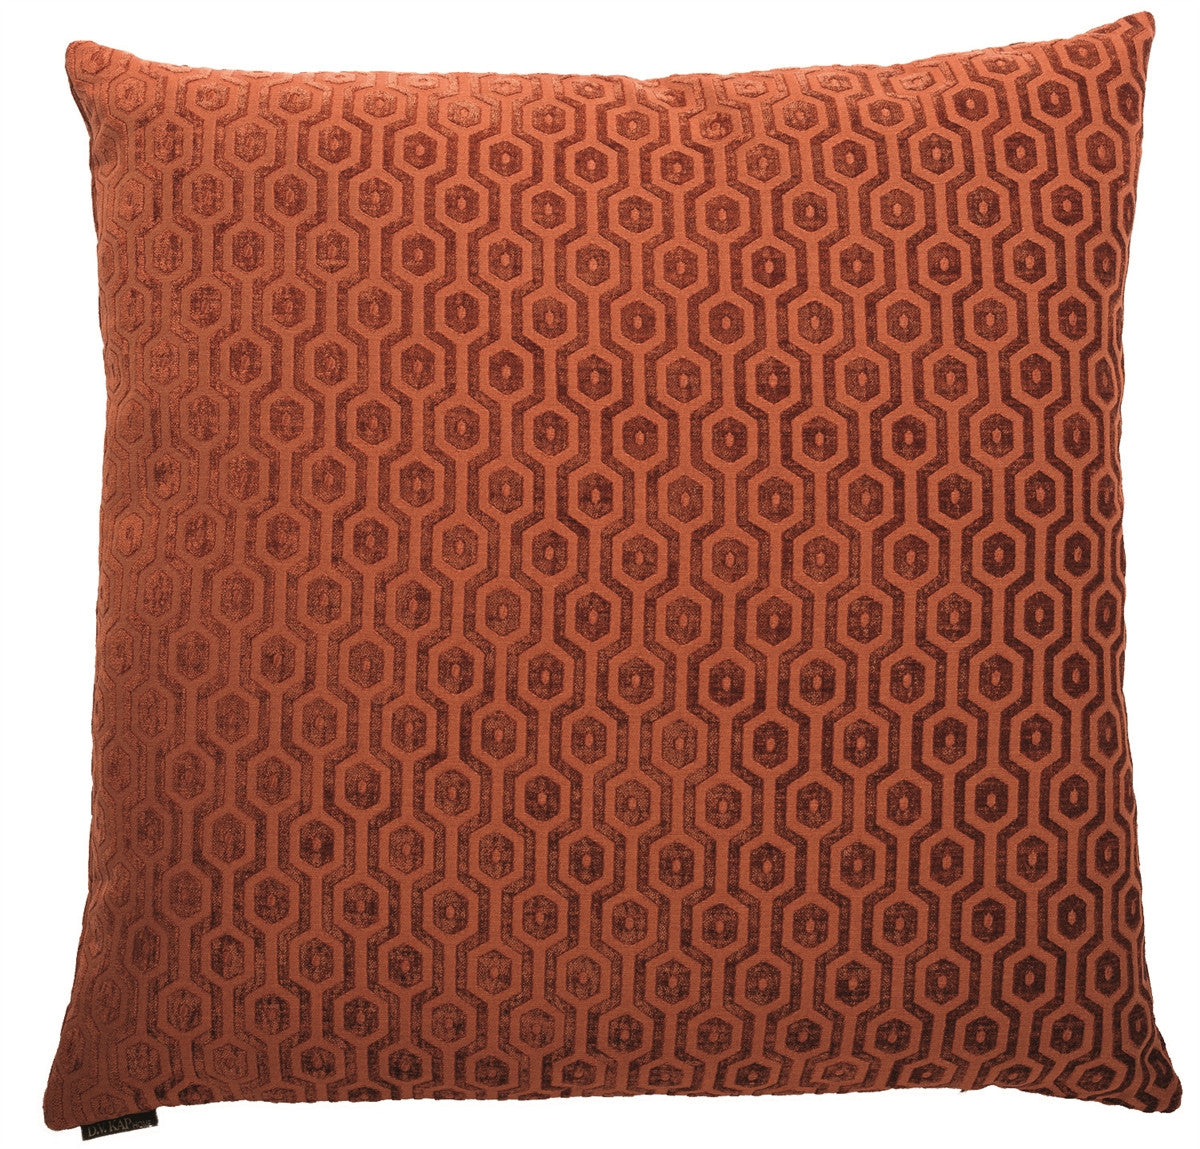 DV Kap Home - Seneca Toss Pillow